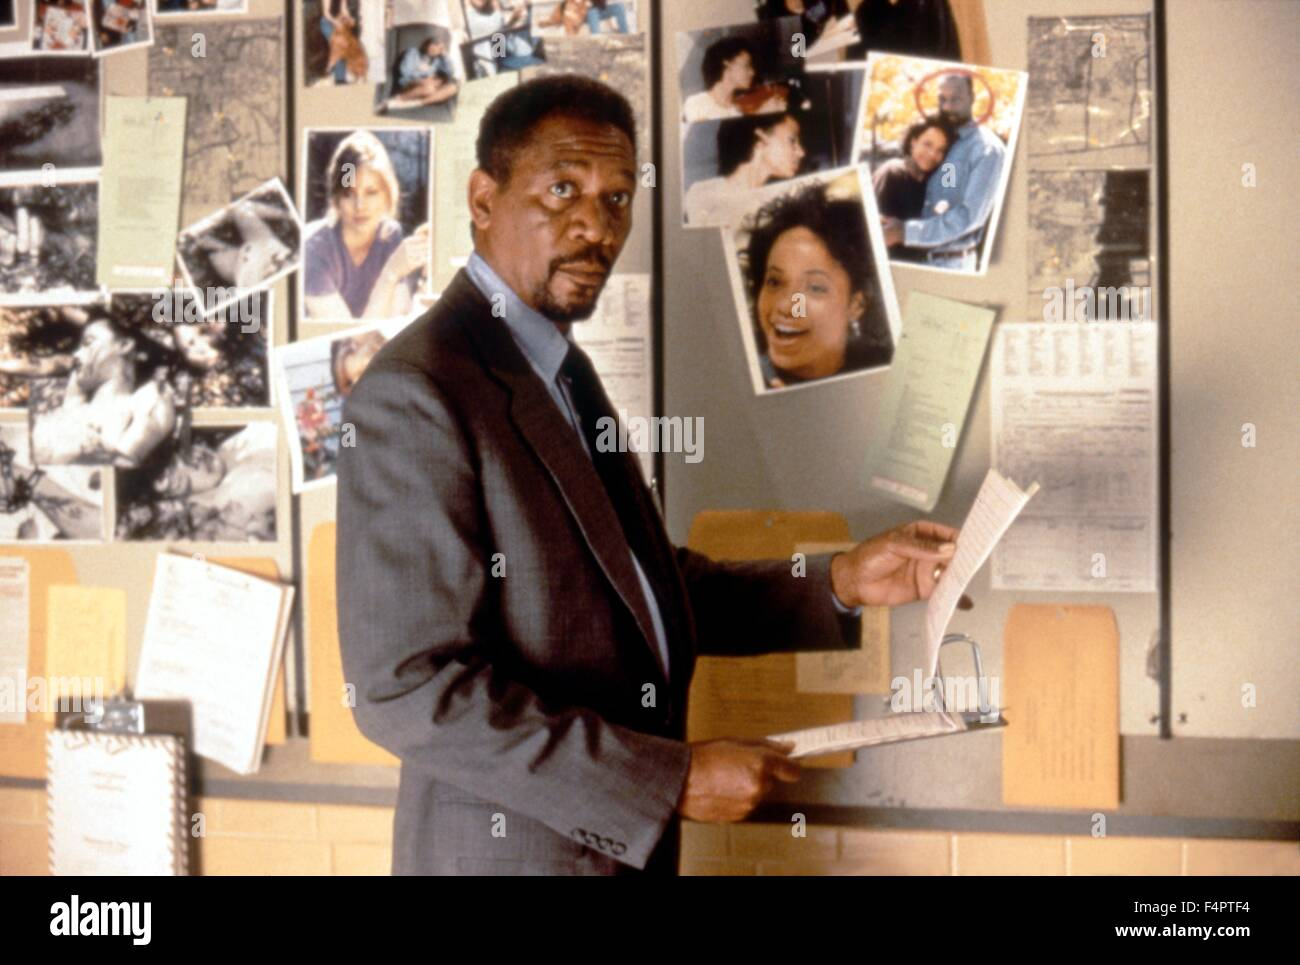 Morgan Freeman / Kiss the Girls / 1997 directed by Gary Fleder [Paramount Pictures] - Stock Image